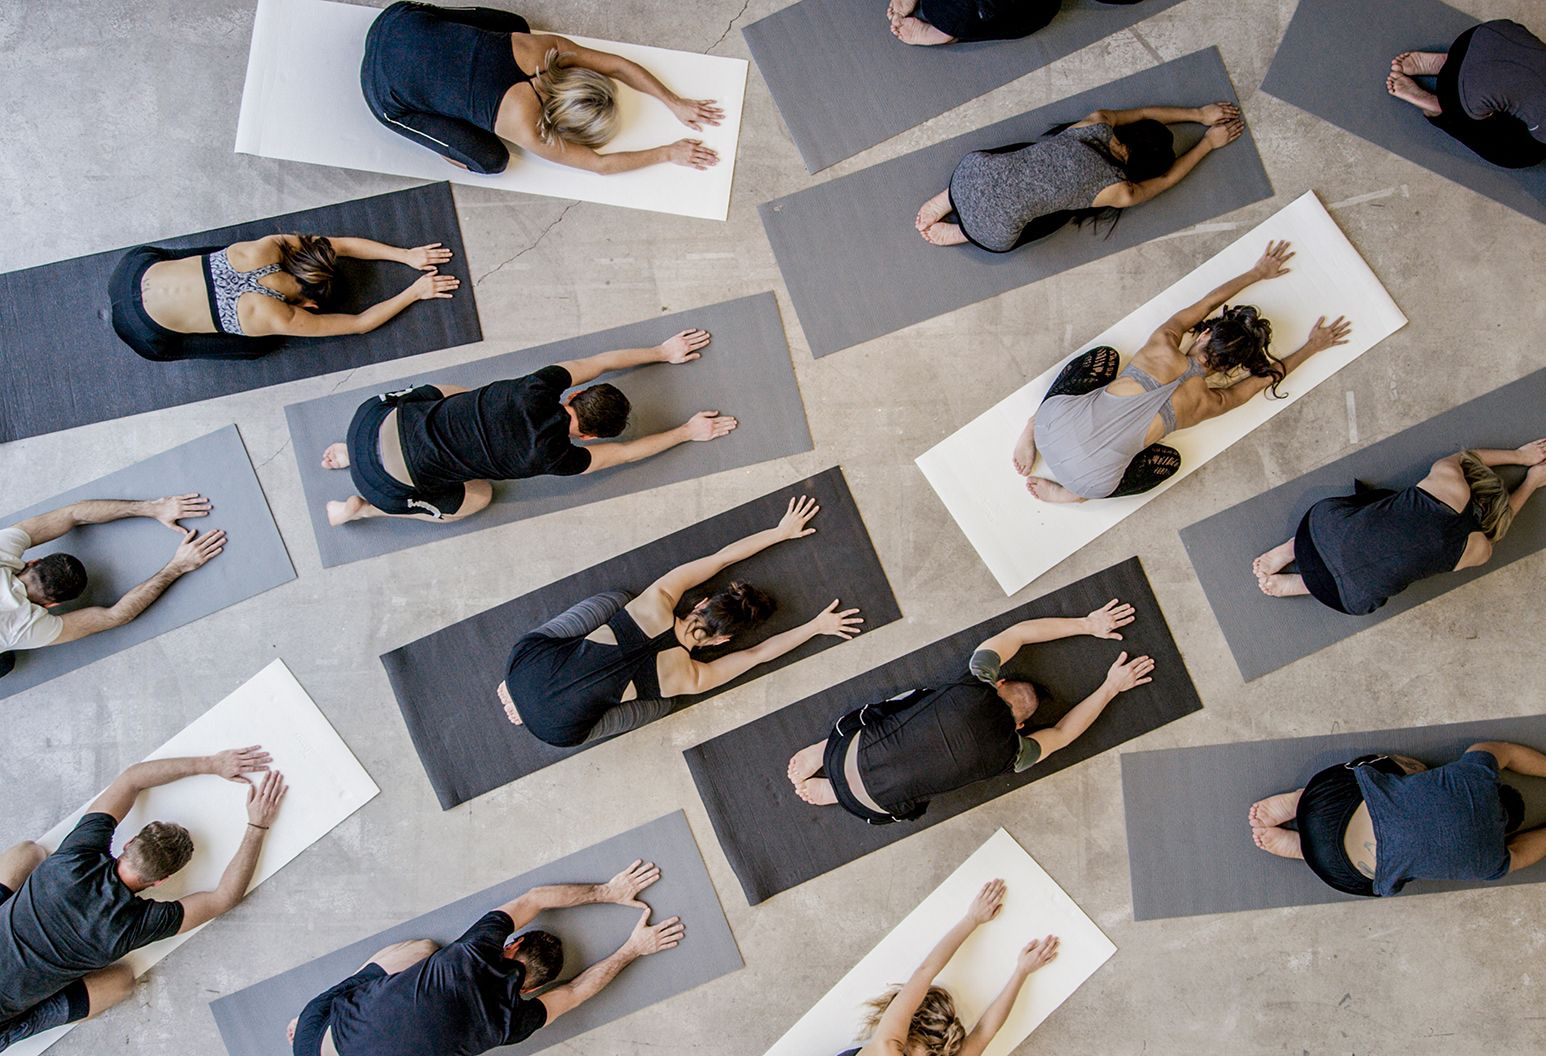 Men and women perform the yoga pose downward dog on black, gray and white yoga mats.